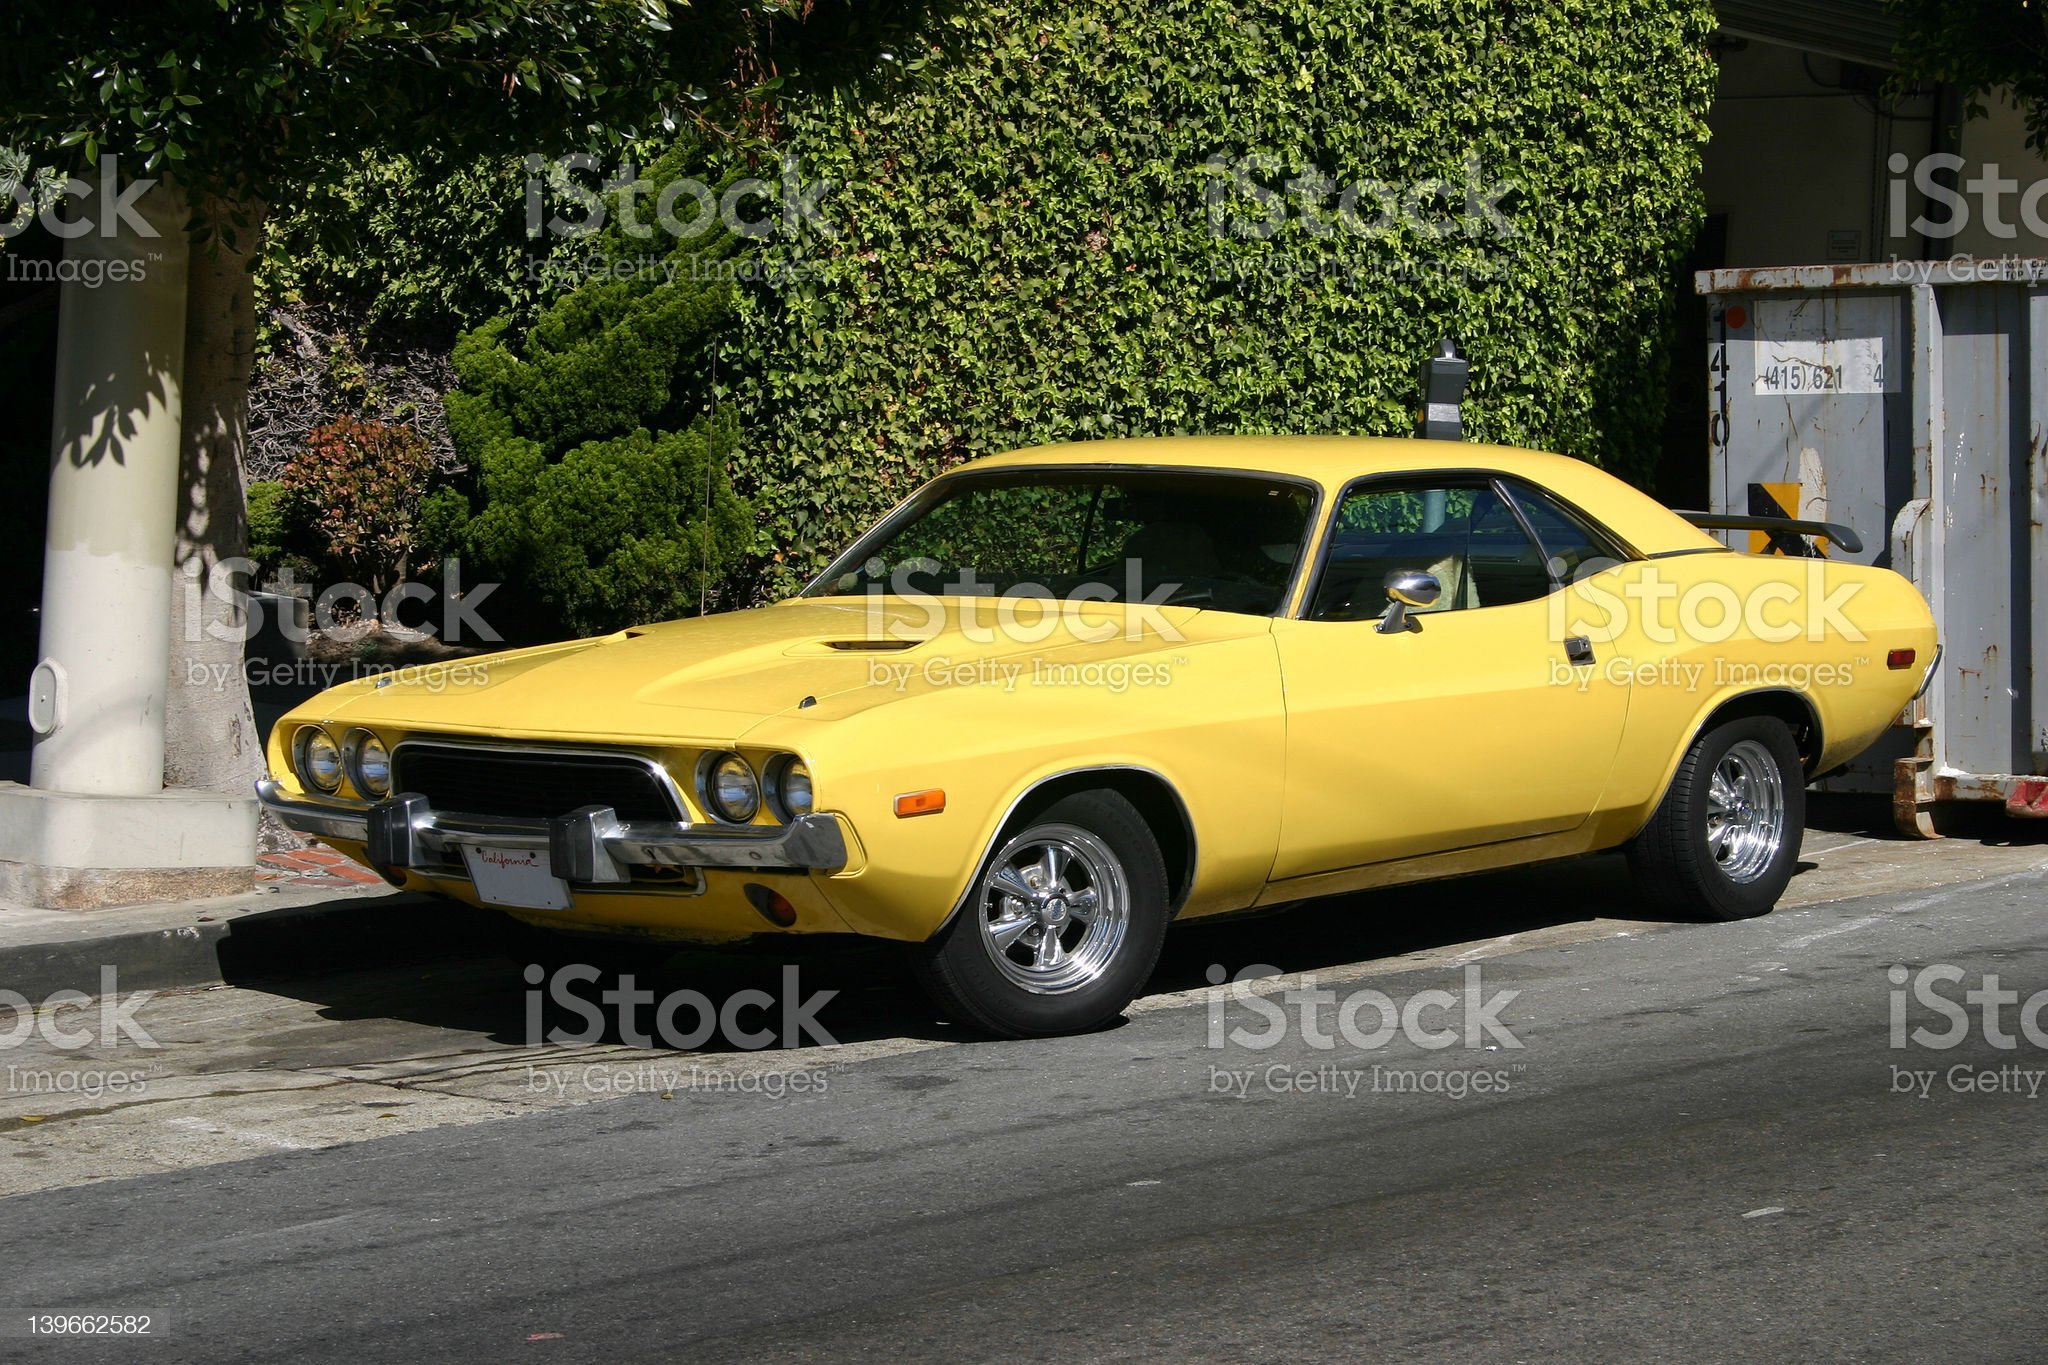 Muscle Car royalty-free stock photo